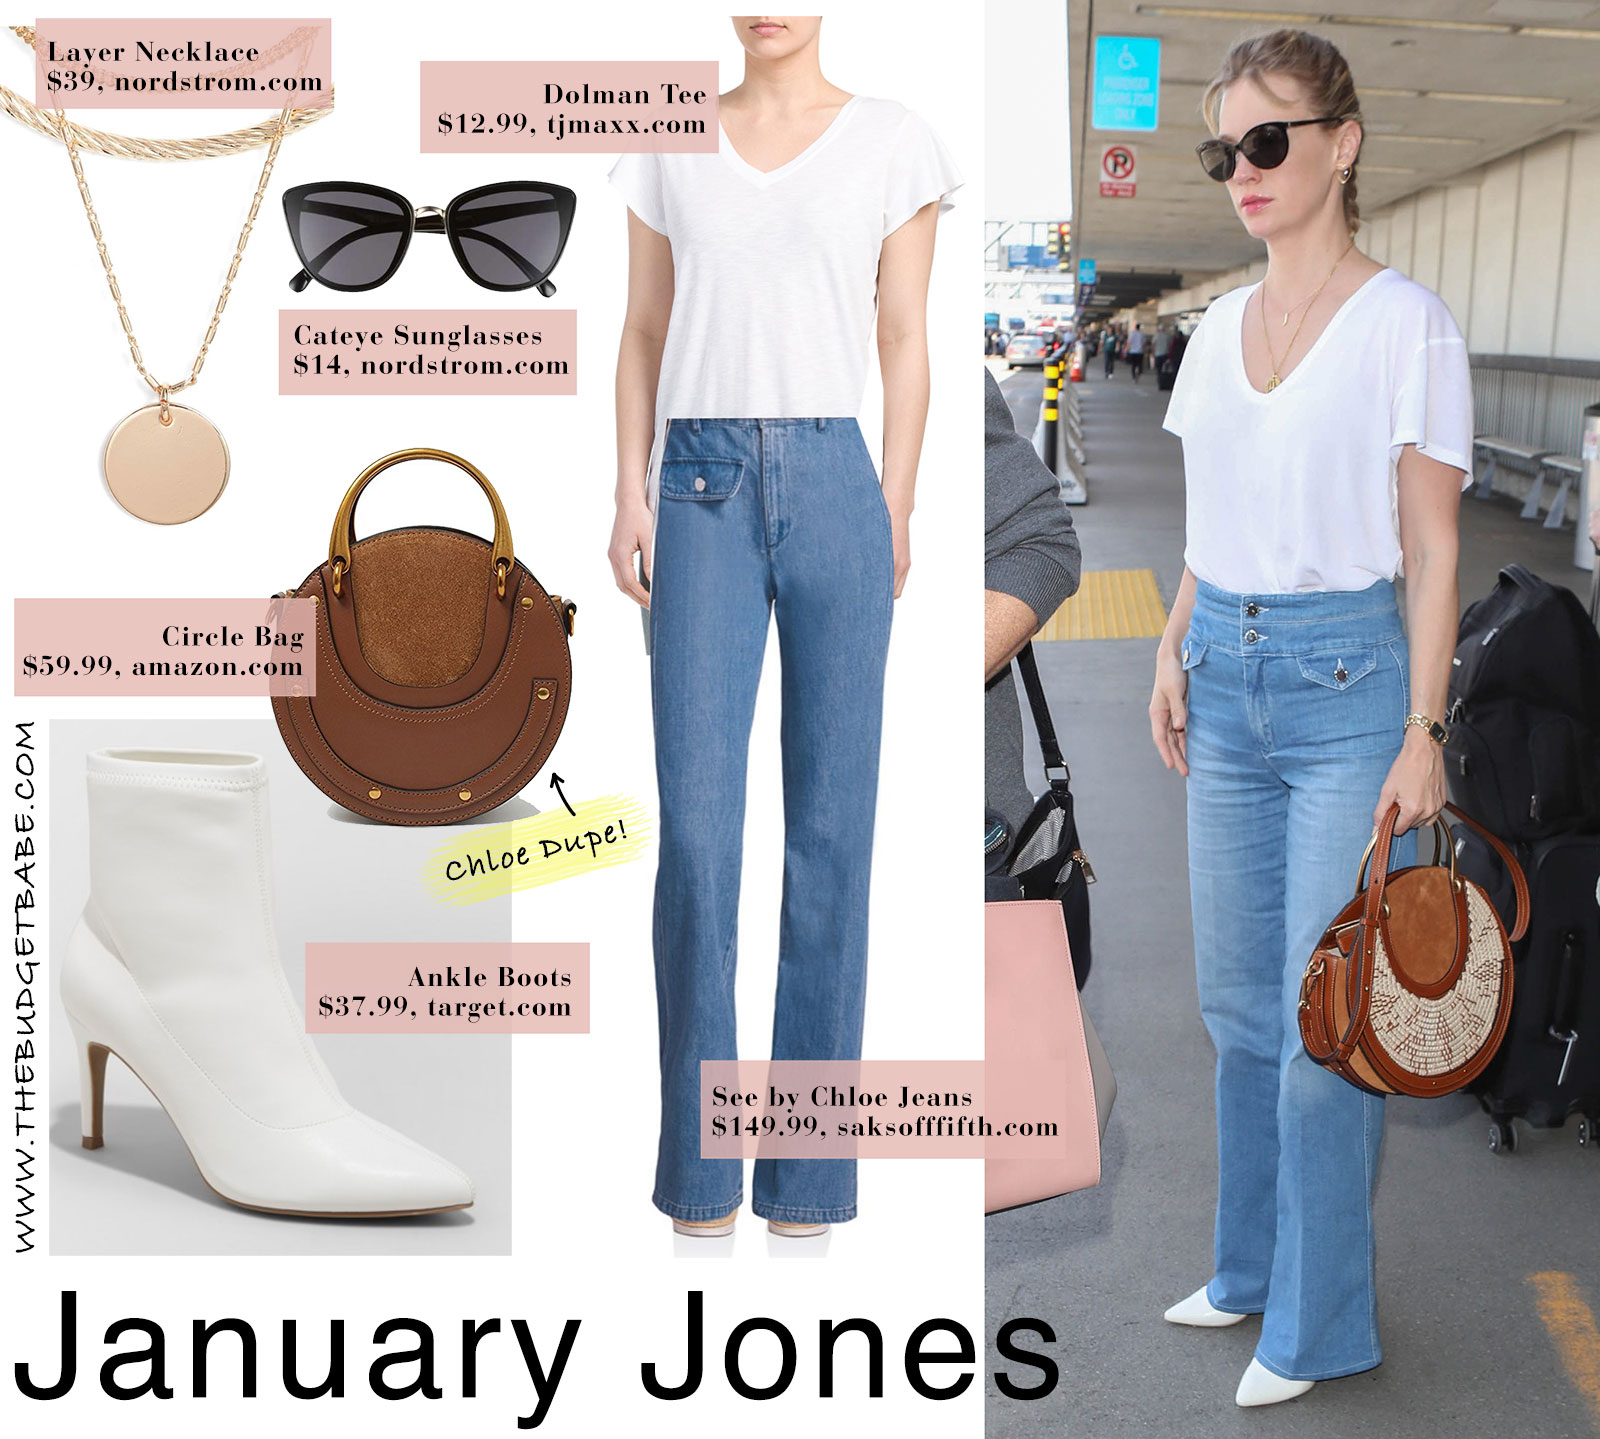 January Jones style featuring white tee, high waist button-fly jeans and white boots with Chloe bag